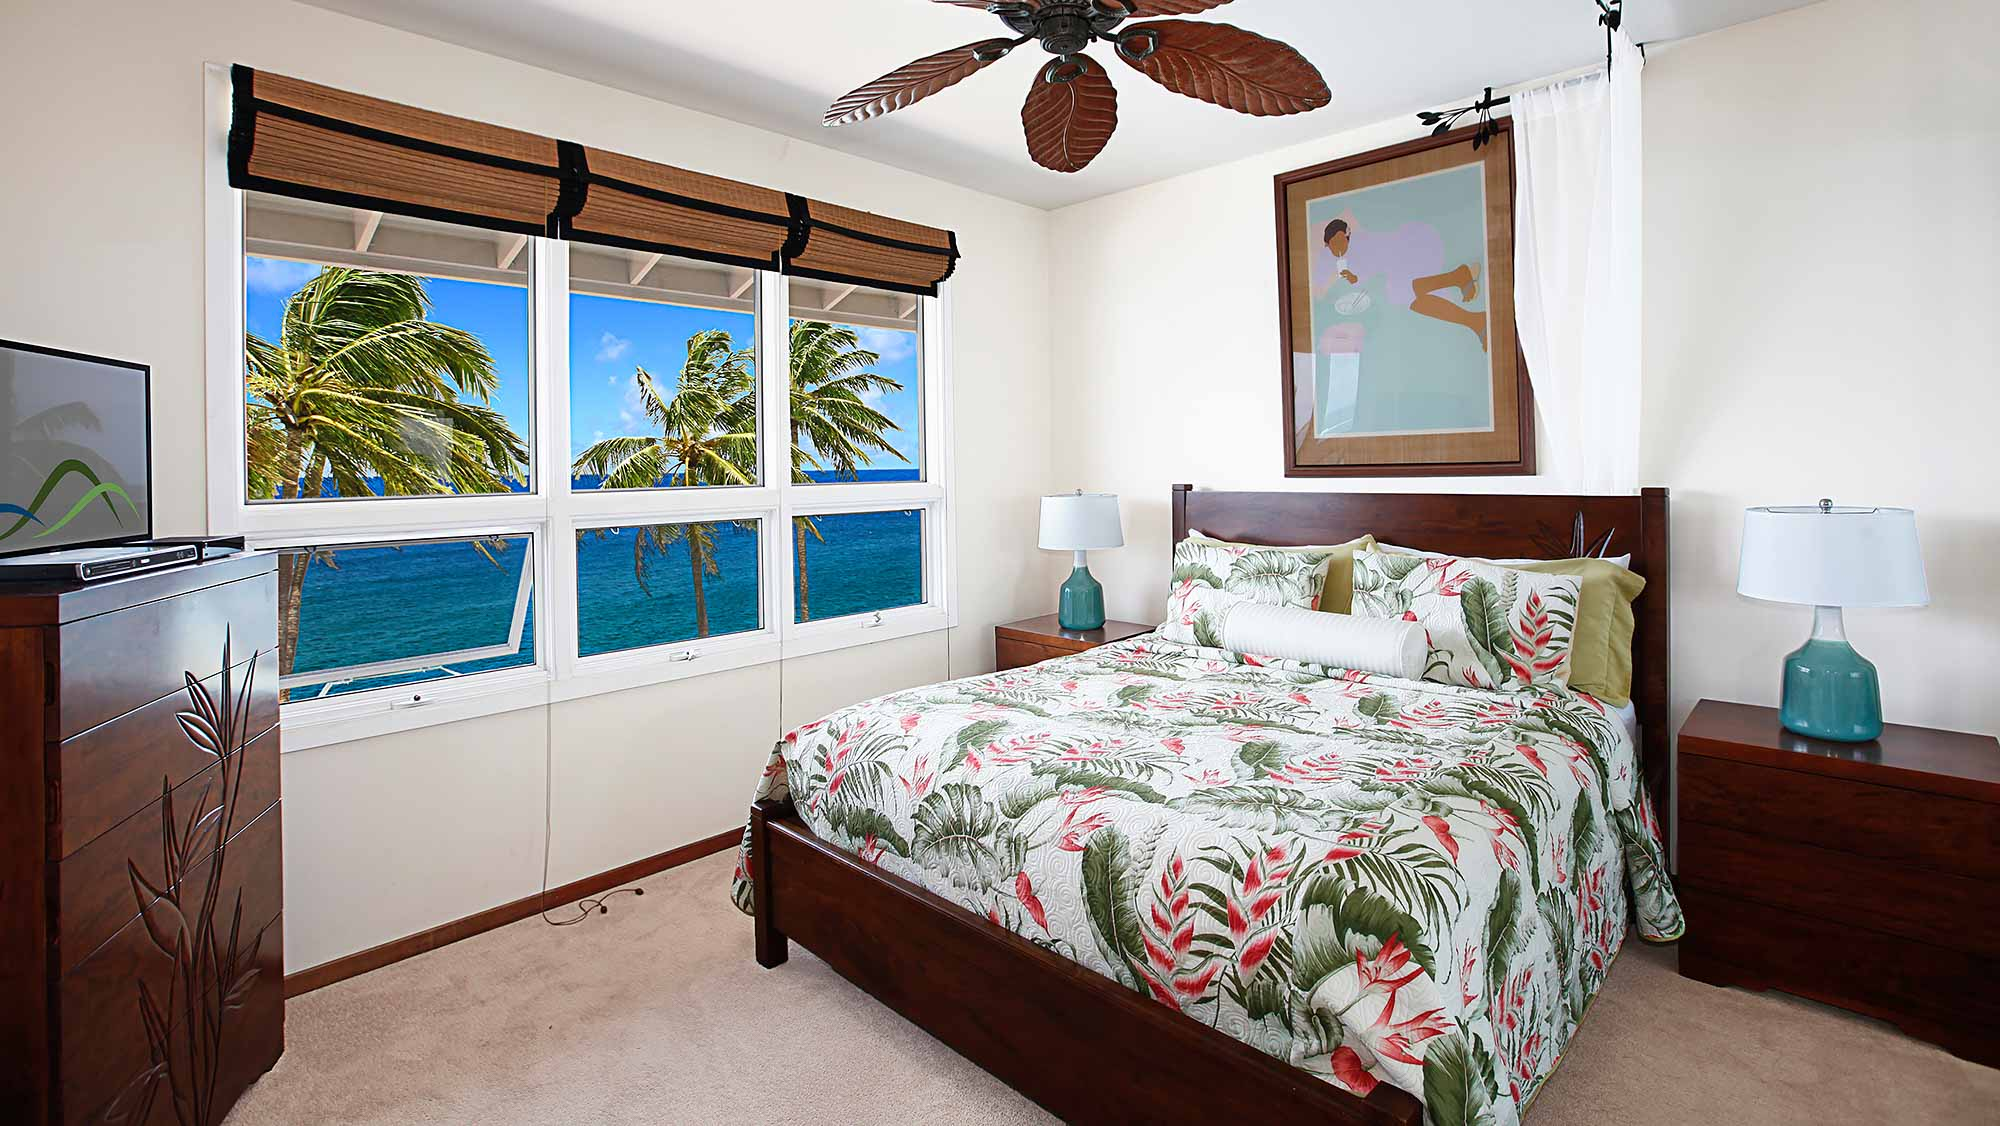 Whalers Cove at Koloa Landing #137 - Master Bedroom Suite - Parrish Kauai